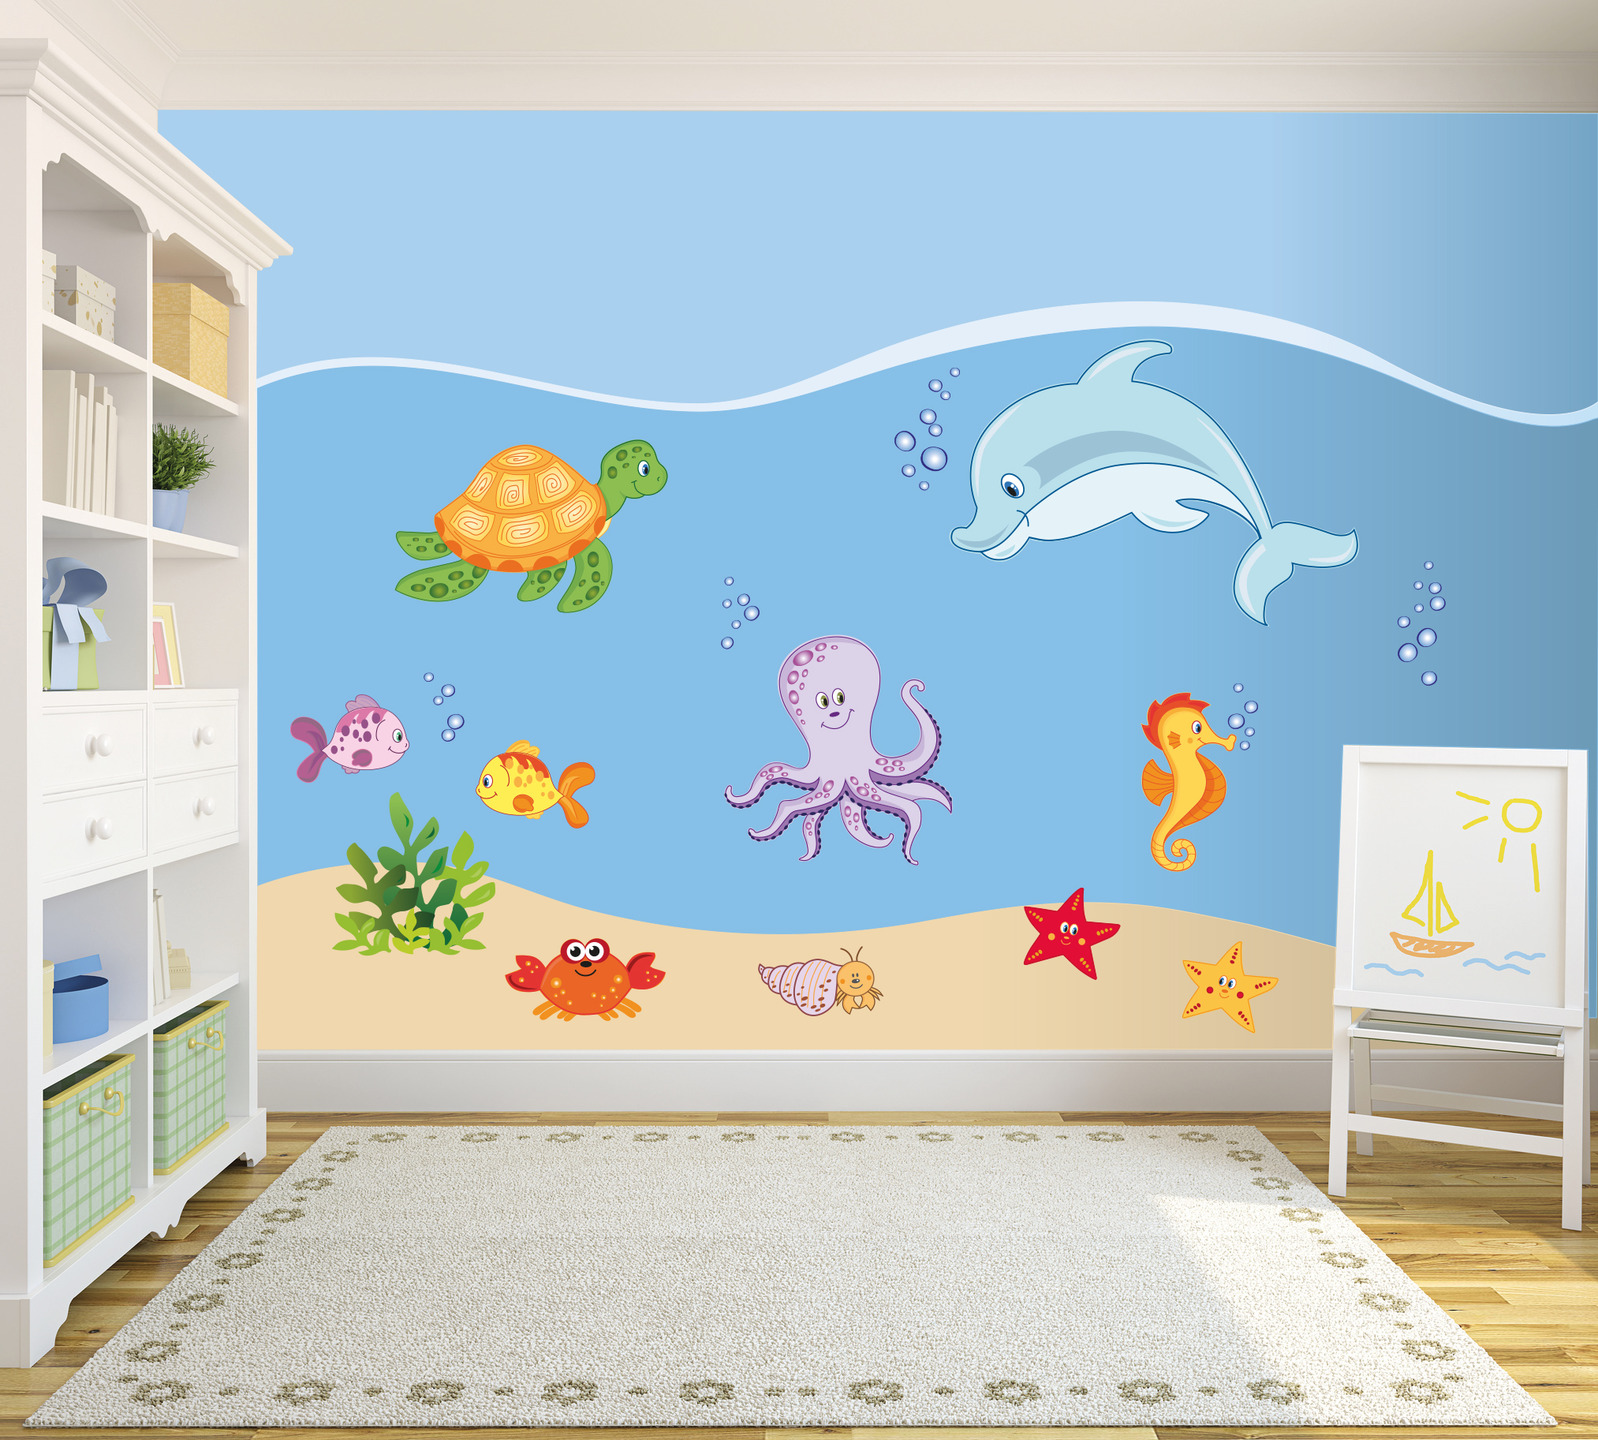 Decorazioni Camerette Bambini Pictures to pin on Pinterest